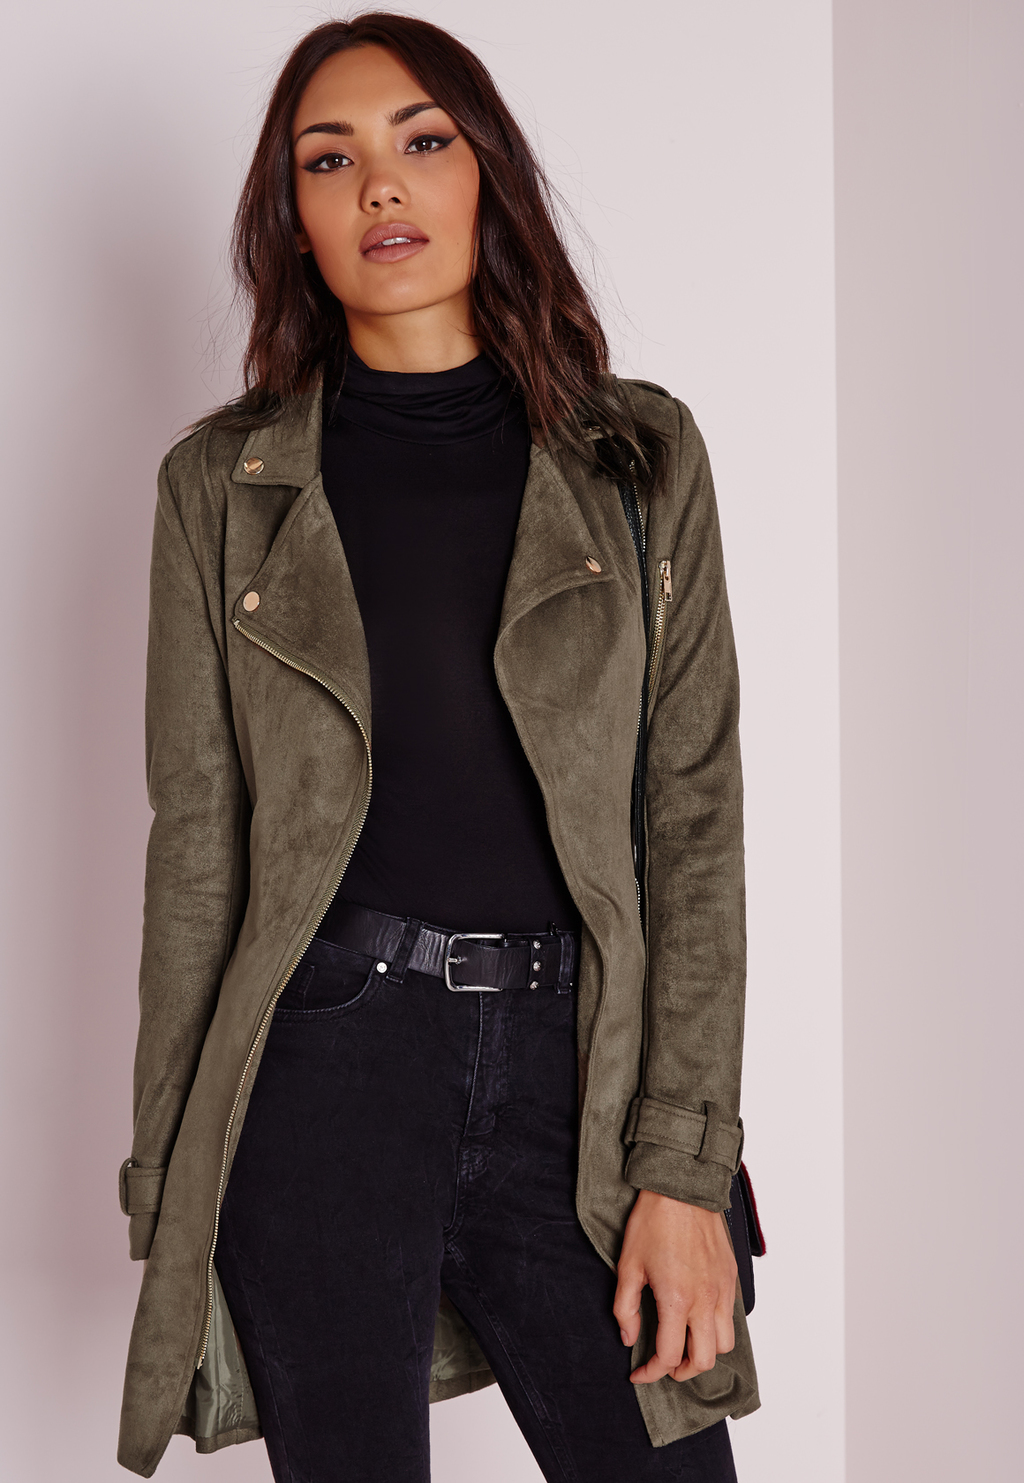 Longline Zazula Suede Biker Jacket Khaki, Beige - pattern: plain; style: biker; collar: asymmetric biker; predominant colour: khaki; occasions: casual, creative work; fit: tailored/fitted; length: mid thigh; sleeve length: long sleeve; sleeve style: standard; collar break: low/open; pattern type: fabric; texture group: suede; fibres: nylon - stretch; season: a/w 2015; wardrobe: basic